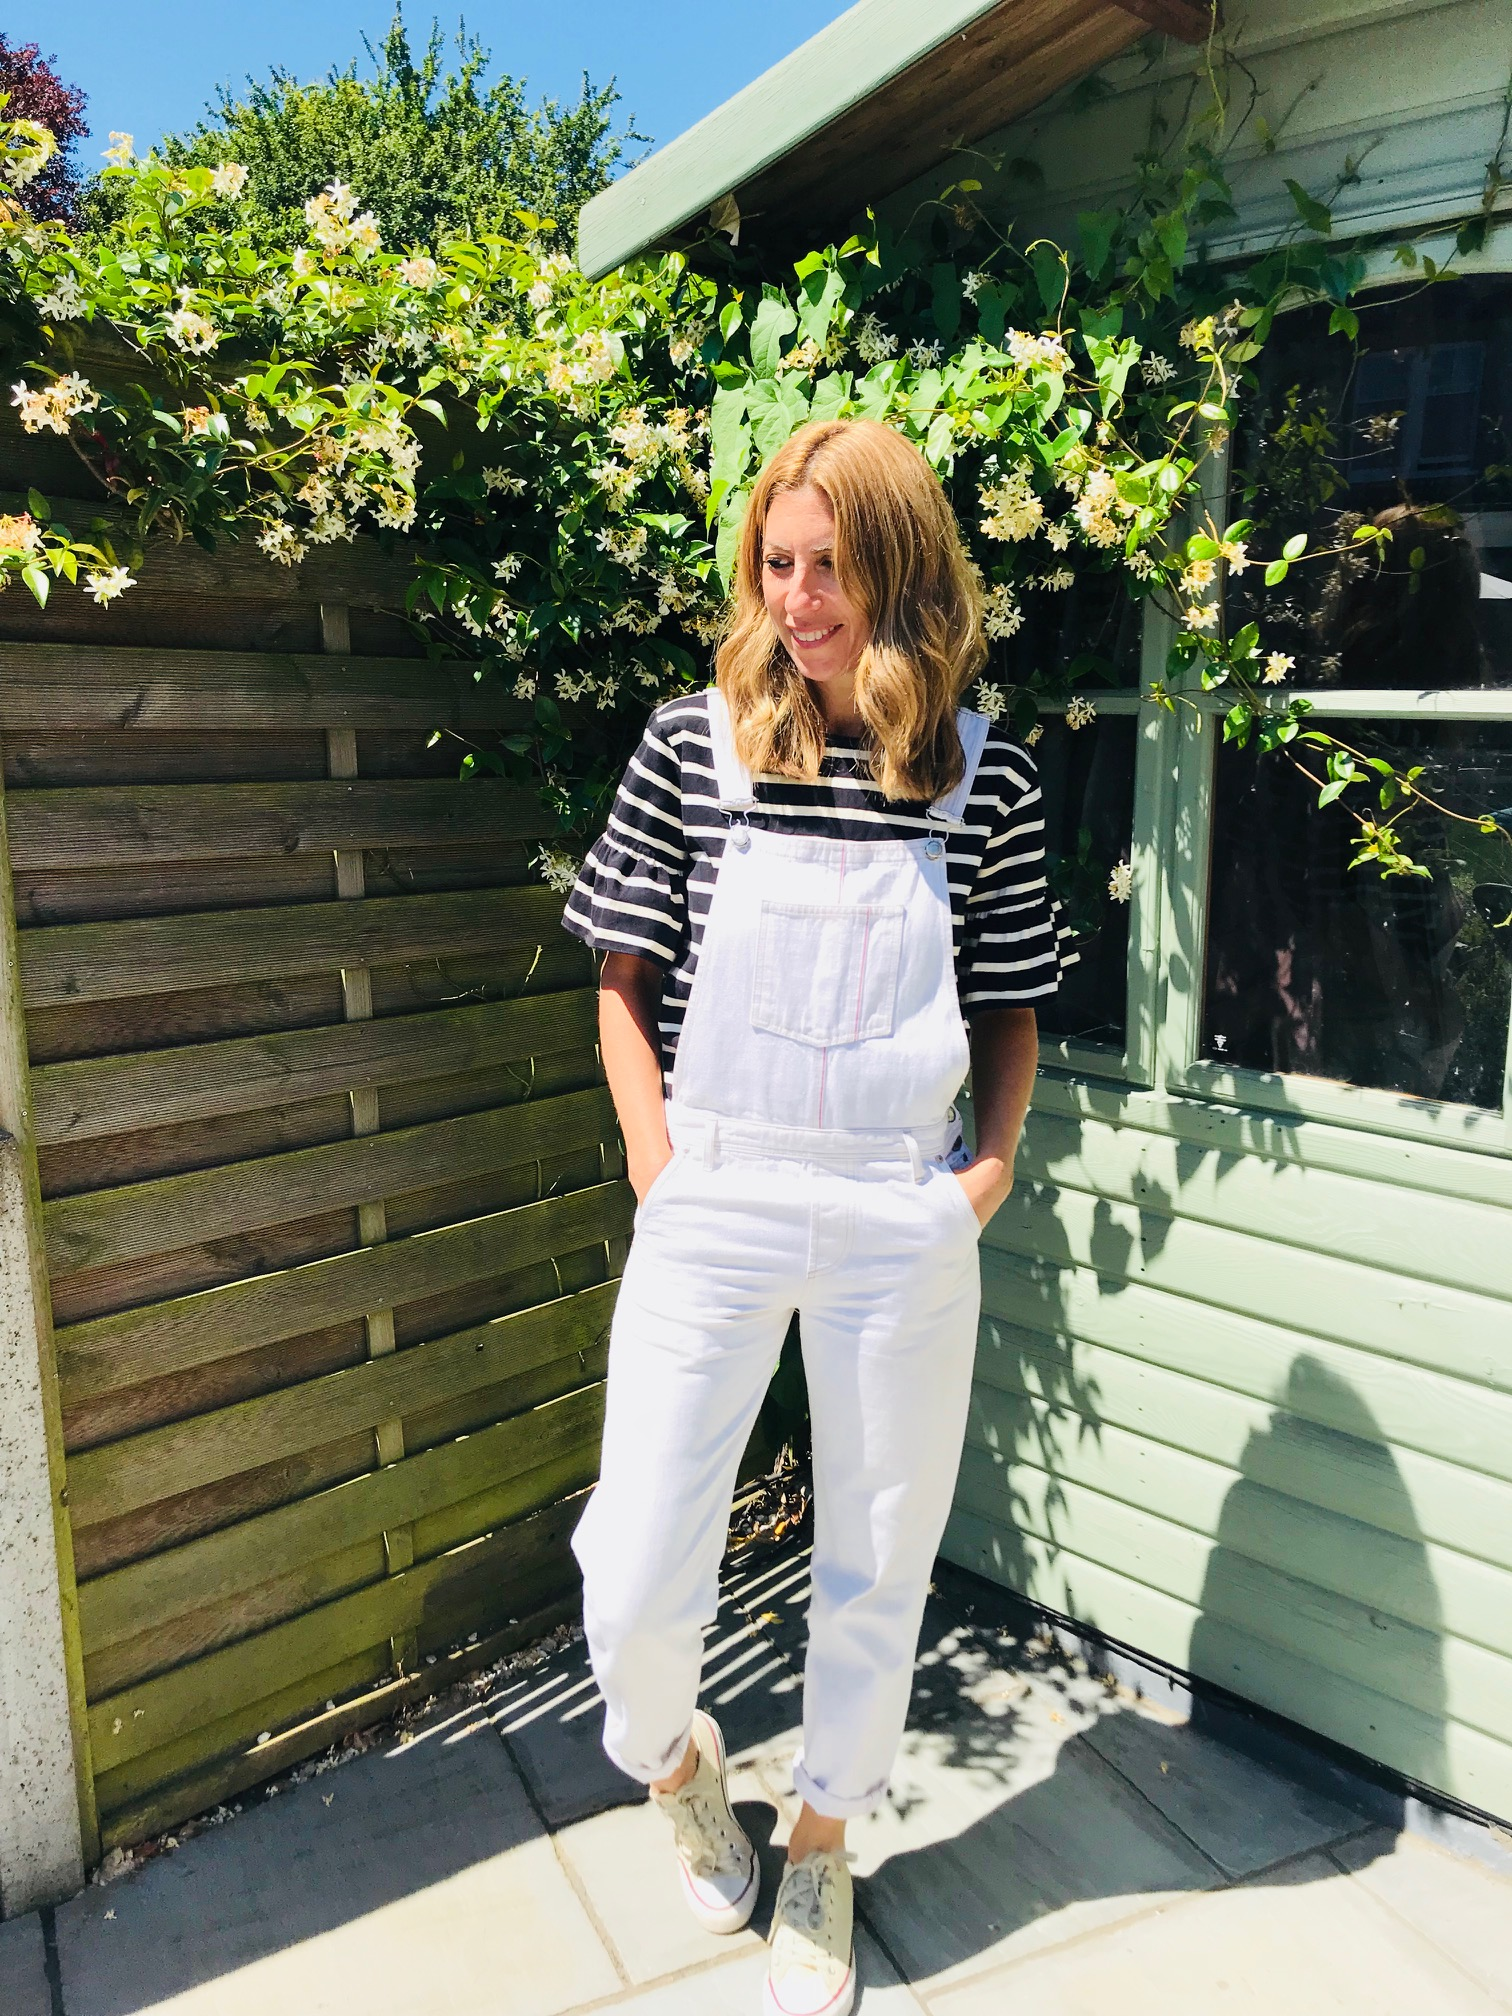 Denim - Dungarees From Topshop (Old)Free Peopledo a similar style, click on the link!Super useful in summer and winter Wear with a multitude of different topsDress up or down